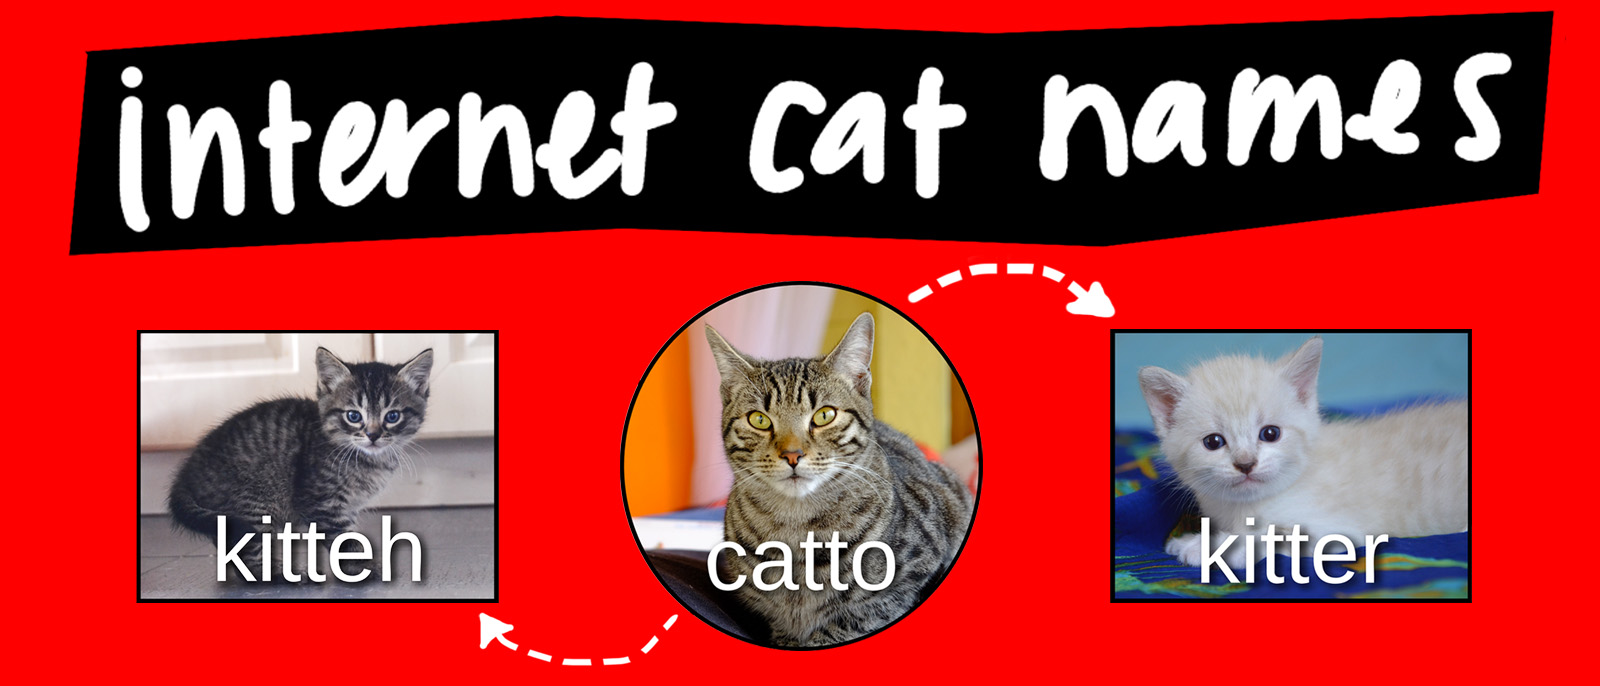 Catto memes video diagram lucidchart blog ccuart Image collections